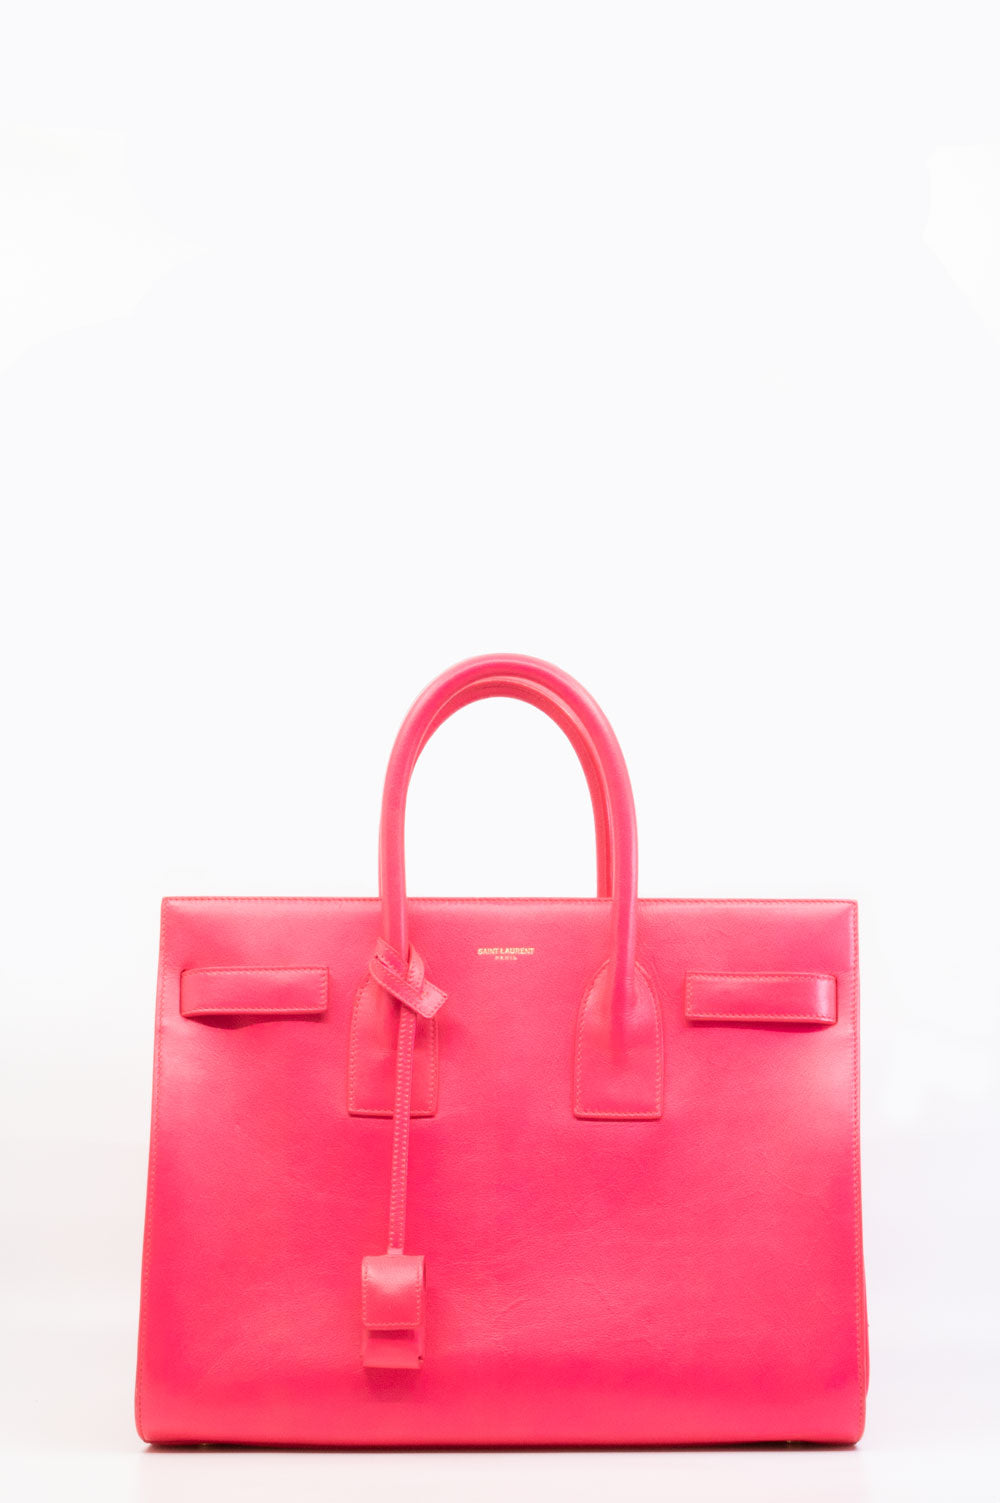 Sant Laurent Sac de Jour in neon pink.